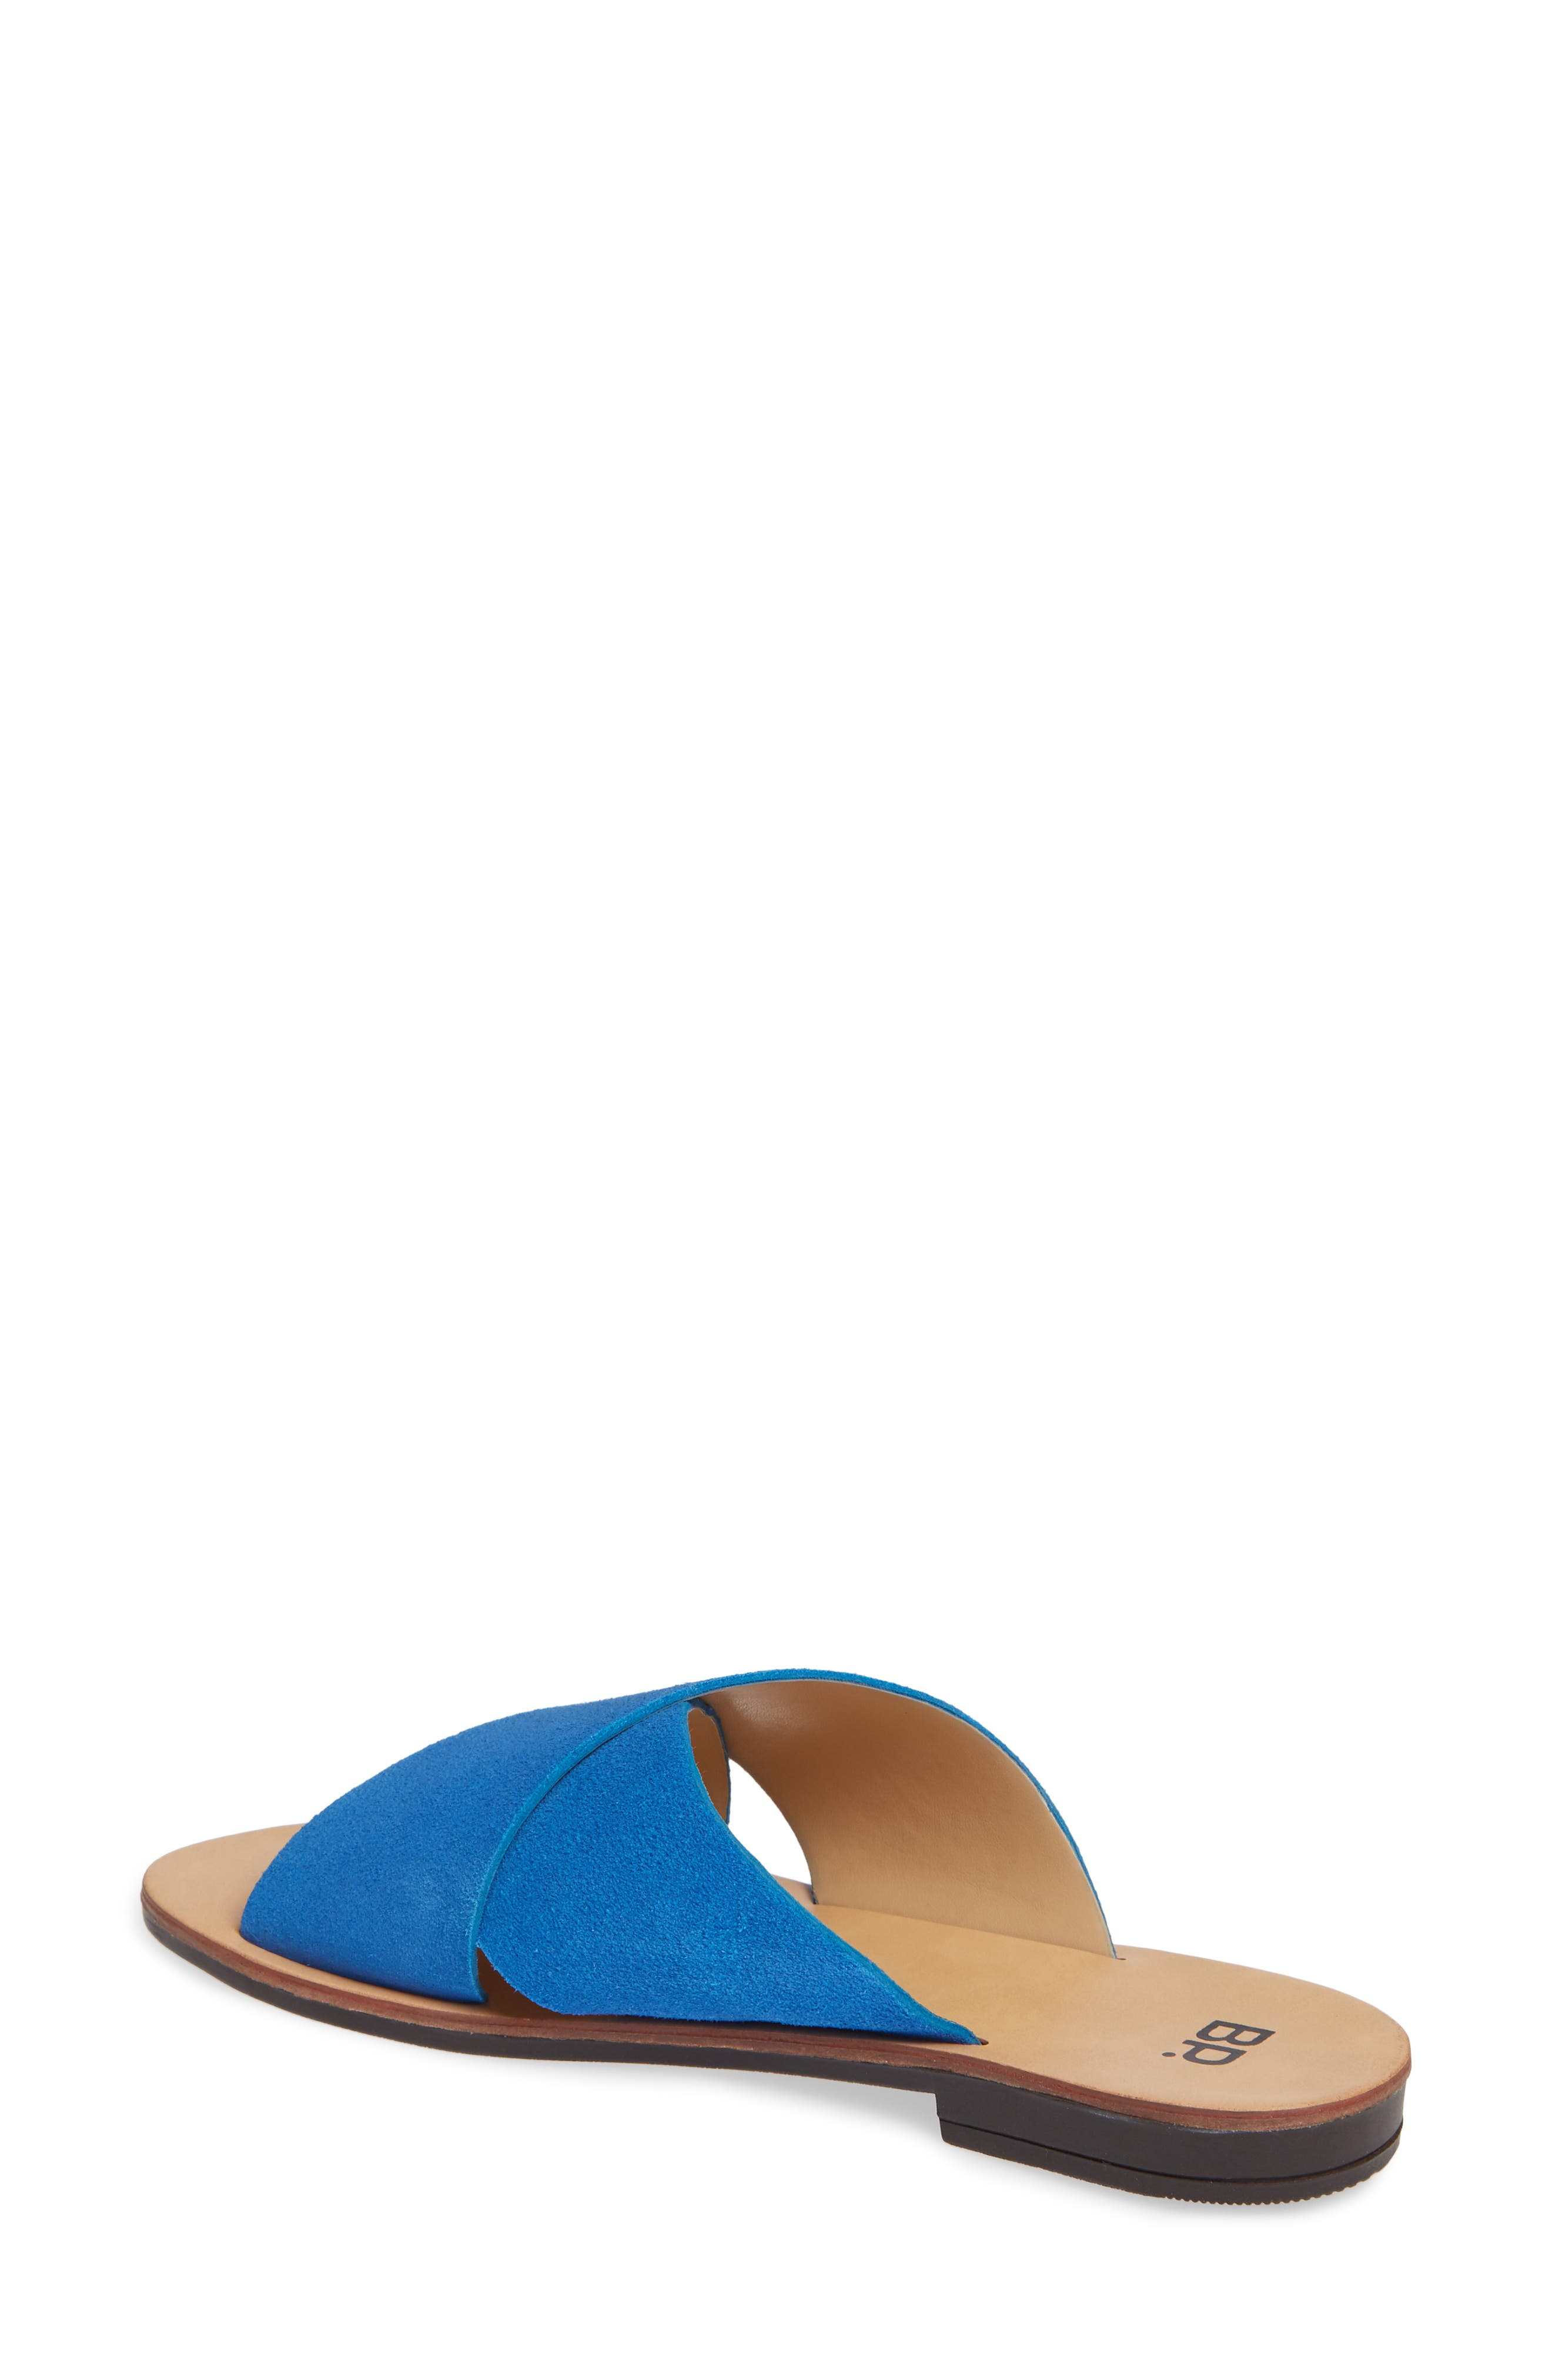 Twist Cross Strap Sandal,                             Alternate thumbnail 2, color,                             410